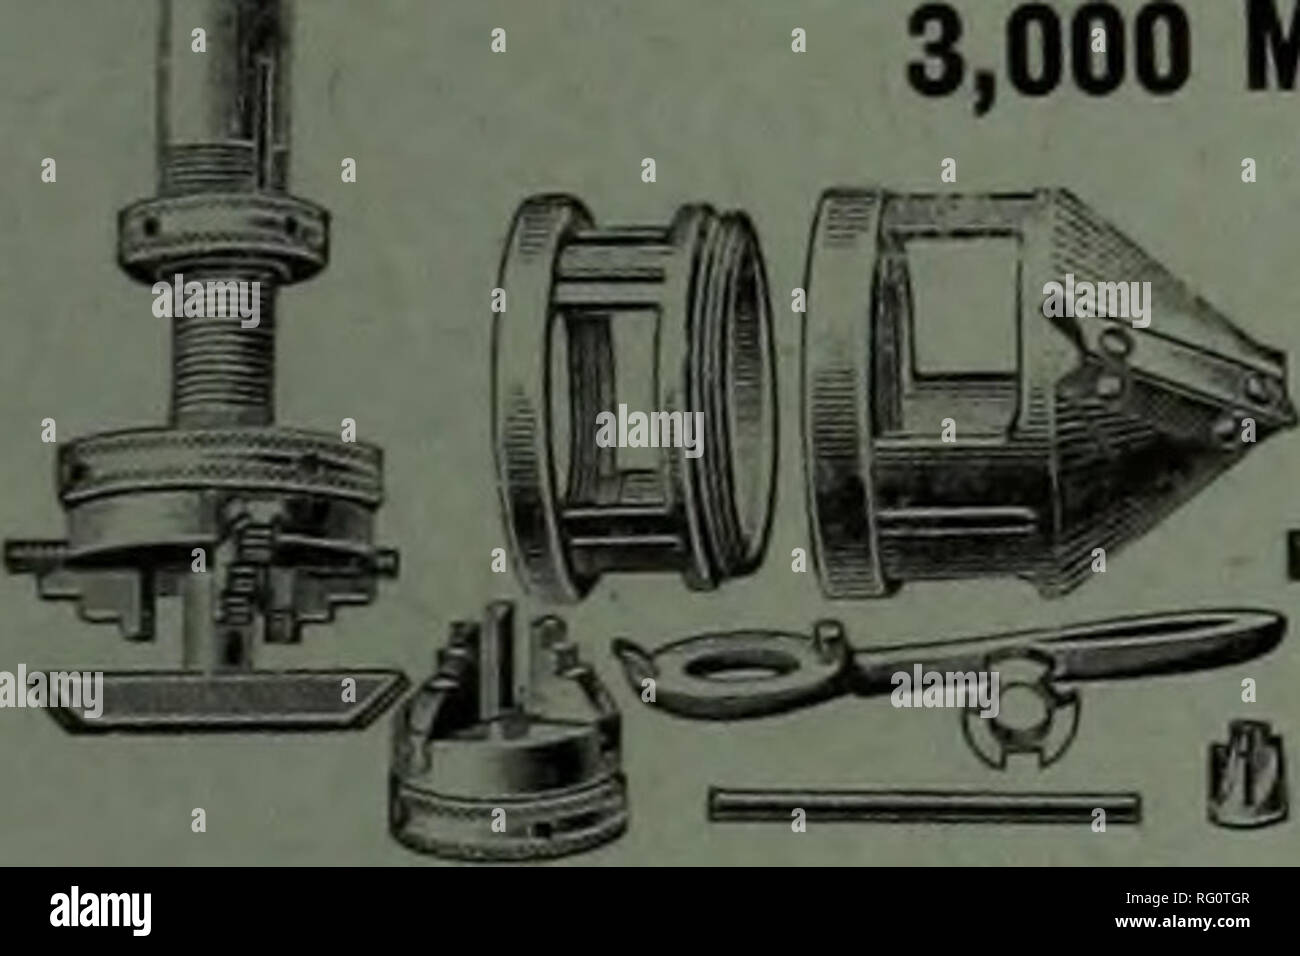 """. Canadian forest industries 1894-1896. Lumbering; Forests and forestry; Forest products; Wood-pulp industry; Wood-using industries. -IN USE BY Kigirt Leading G-overnments BES5 ANSI-FRICBION /UETAL FOR High-speed Engine, Dynamo, Rolling-mill, Steamship, Railroad, Saw-mill, Cotton-mill, Paper-mill, Woollen-mill, Silk-mill, Jute-mill, Rubber-mill, Sugar-mill, Flour-mill AHD J^Zvls MACHIHERY BEARIHGS MAGHOLIA MKTJLXv CO. £££T 74 Coi-Wandt St., NSW YORK LONDON OFFICE : 75 QUEEN VICTORIA STREET CHICAGO OFFICE : TRADERS' BUILDING MONTREAL OFFICE: H. McLAREN & CO., AGENTS THE """"MORSE"""" VA - Stock Image"""